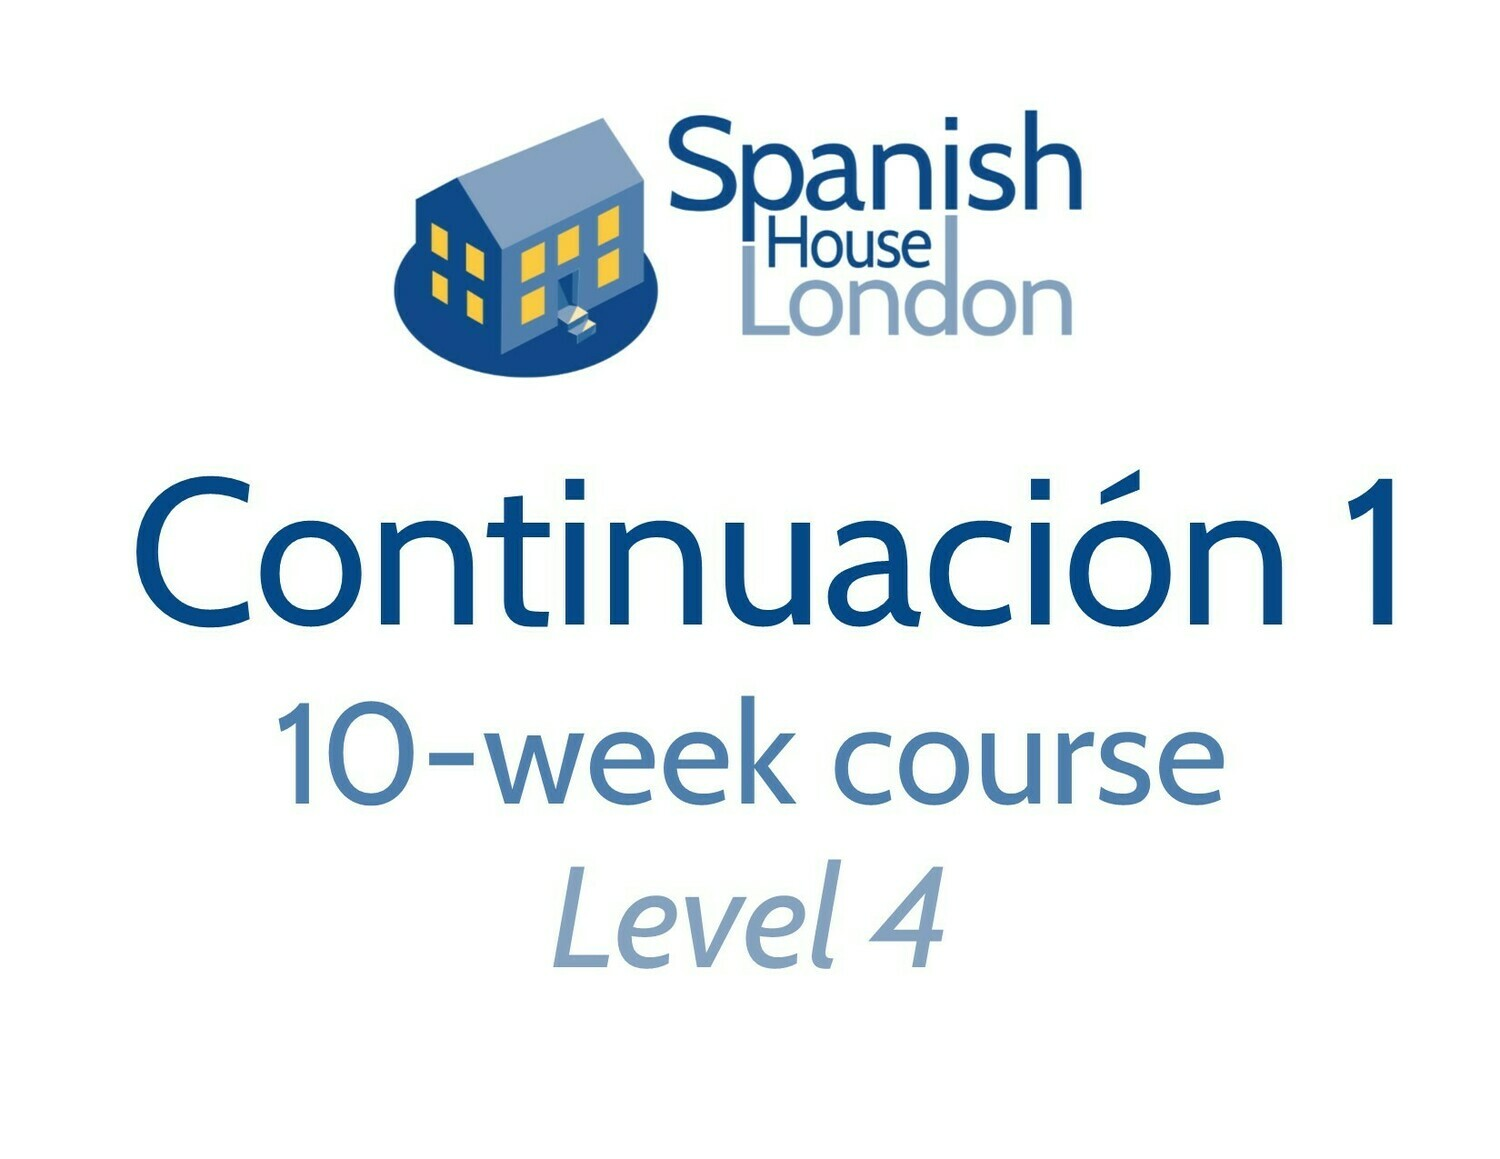 Continuacion 1 Course starting on 28th August at 7.30pm in Clapham North